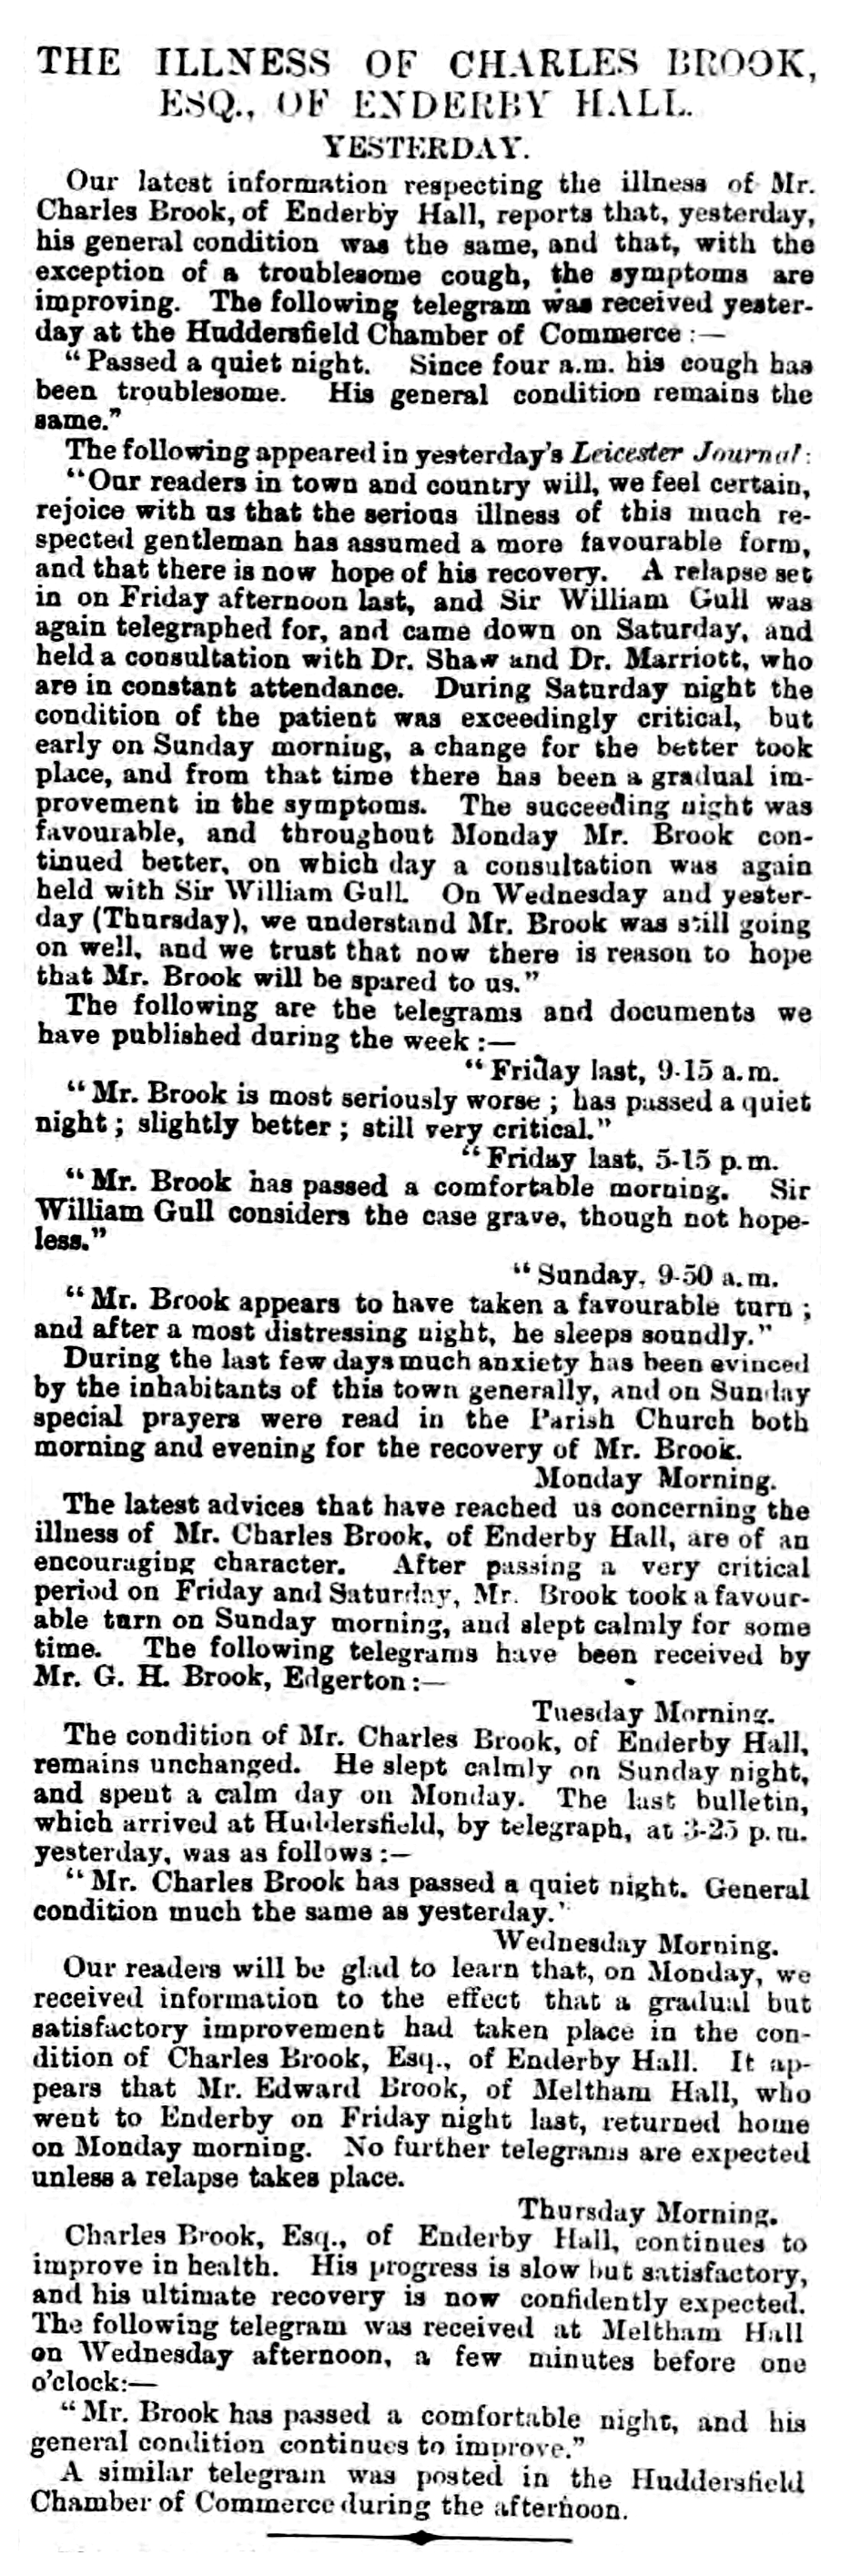 The Illness of Charles Brook - Huddersfield Chronicle 15 June 1872 BL-0000167-18720615-048